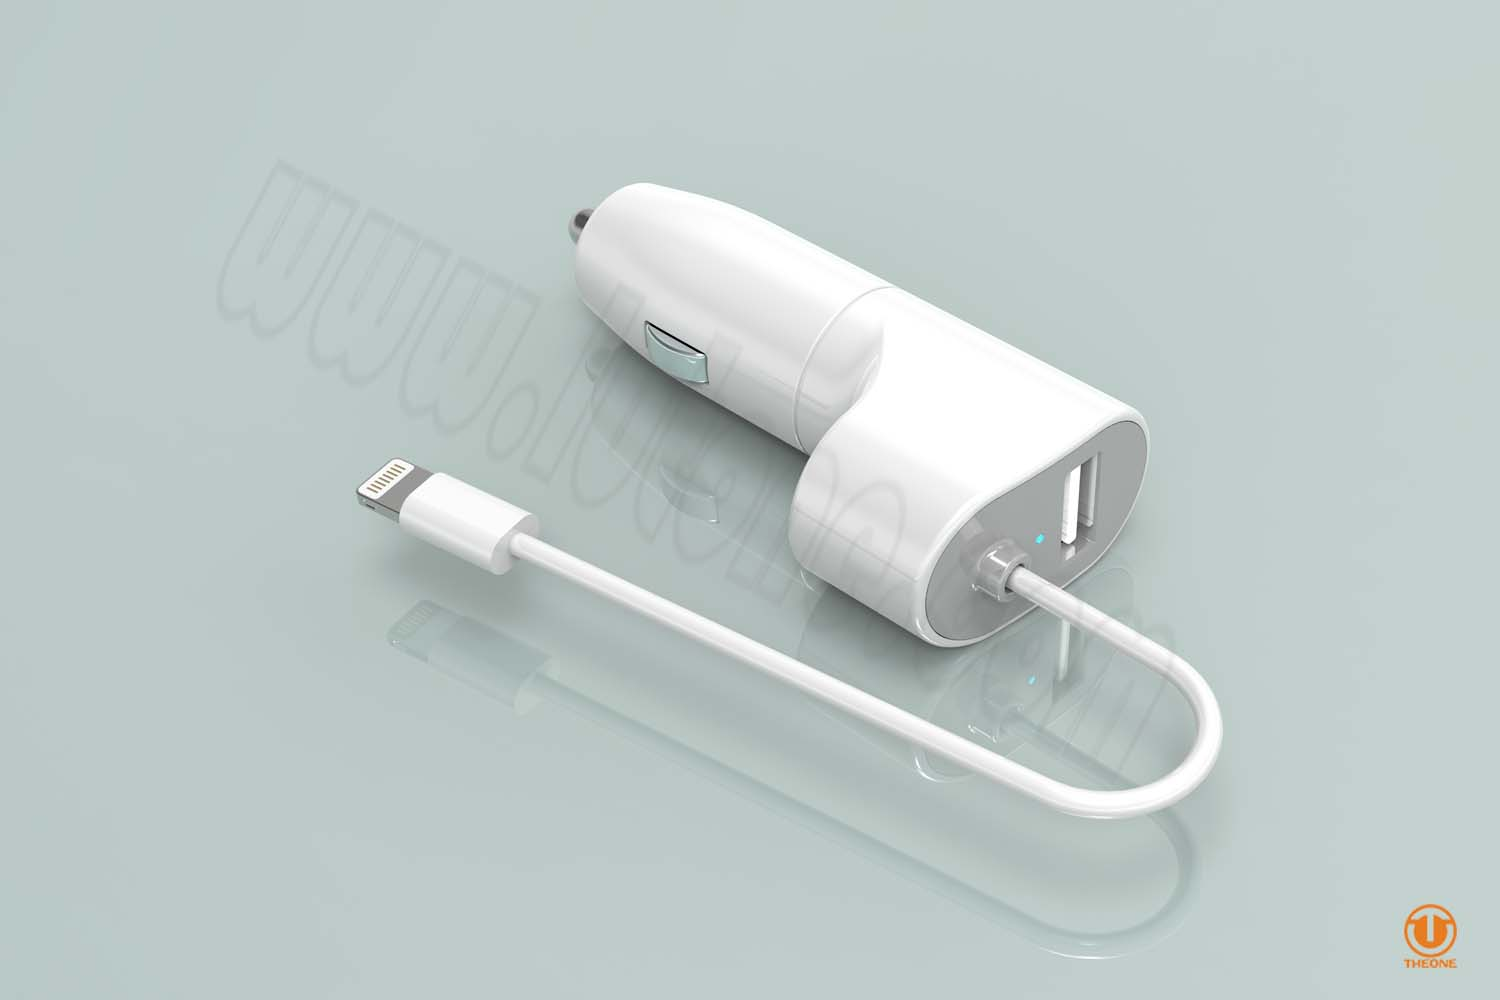 tc03a1-4 wired car charger